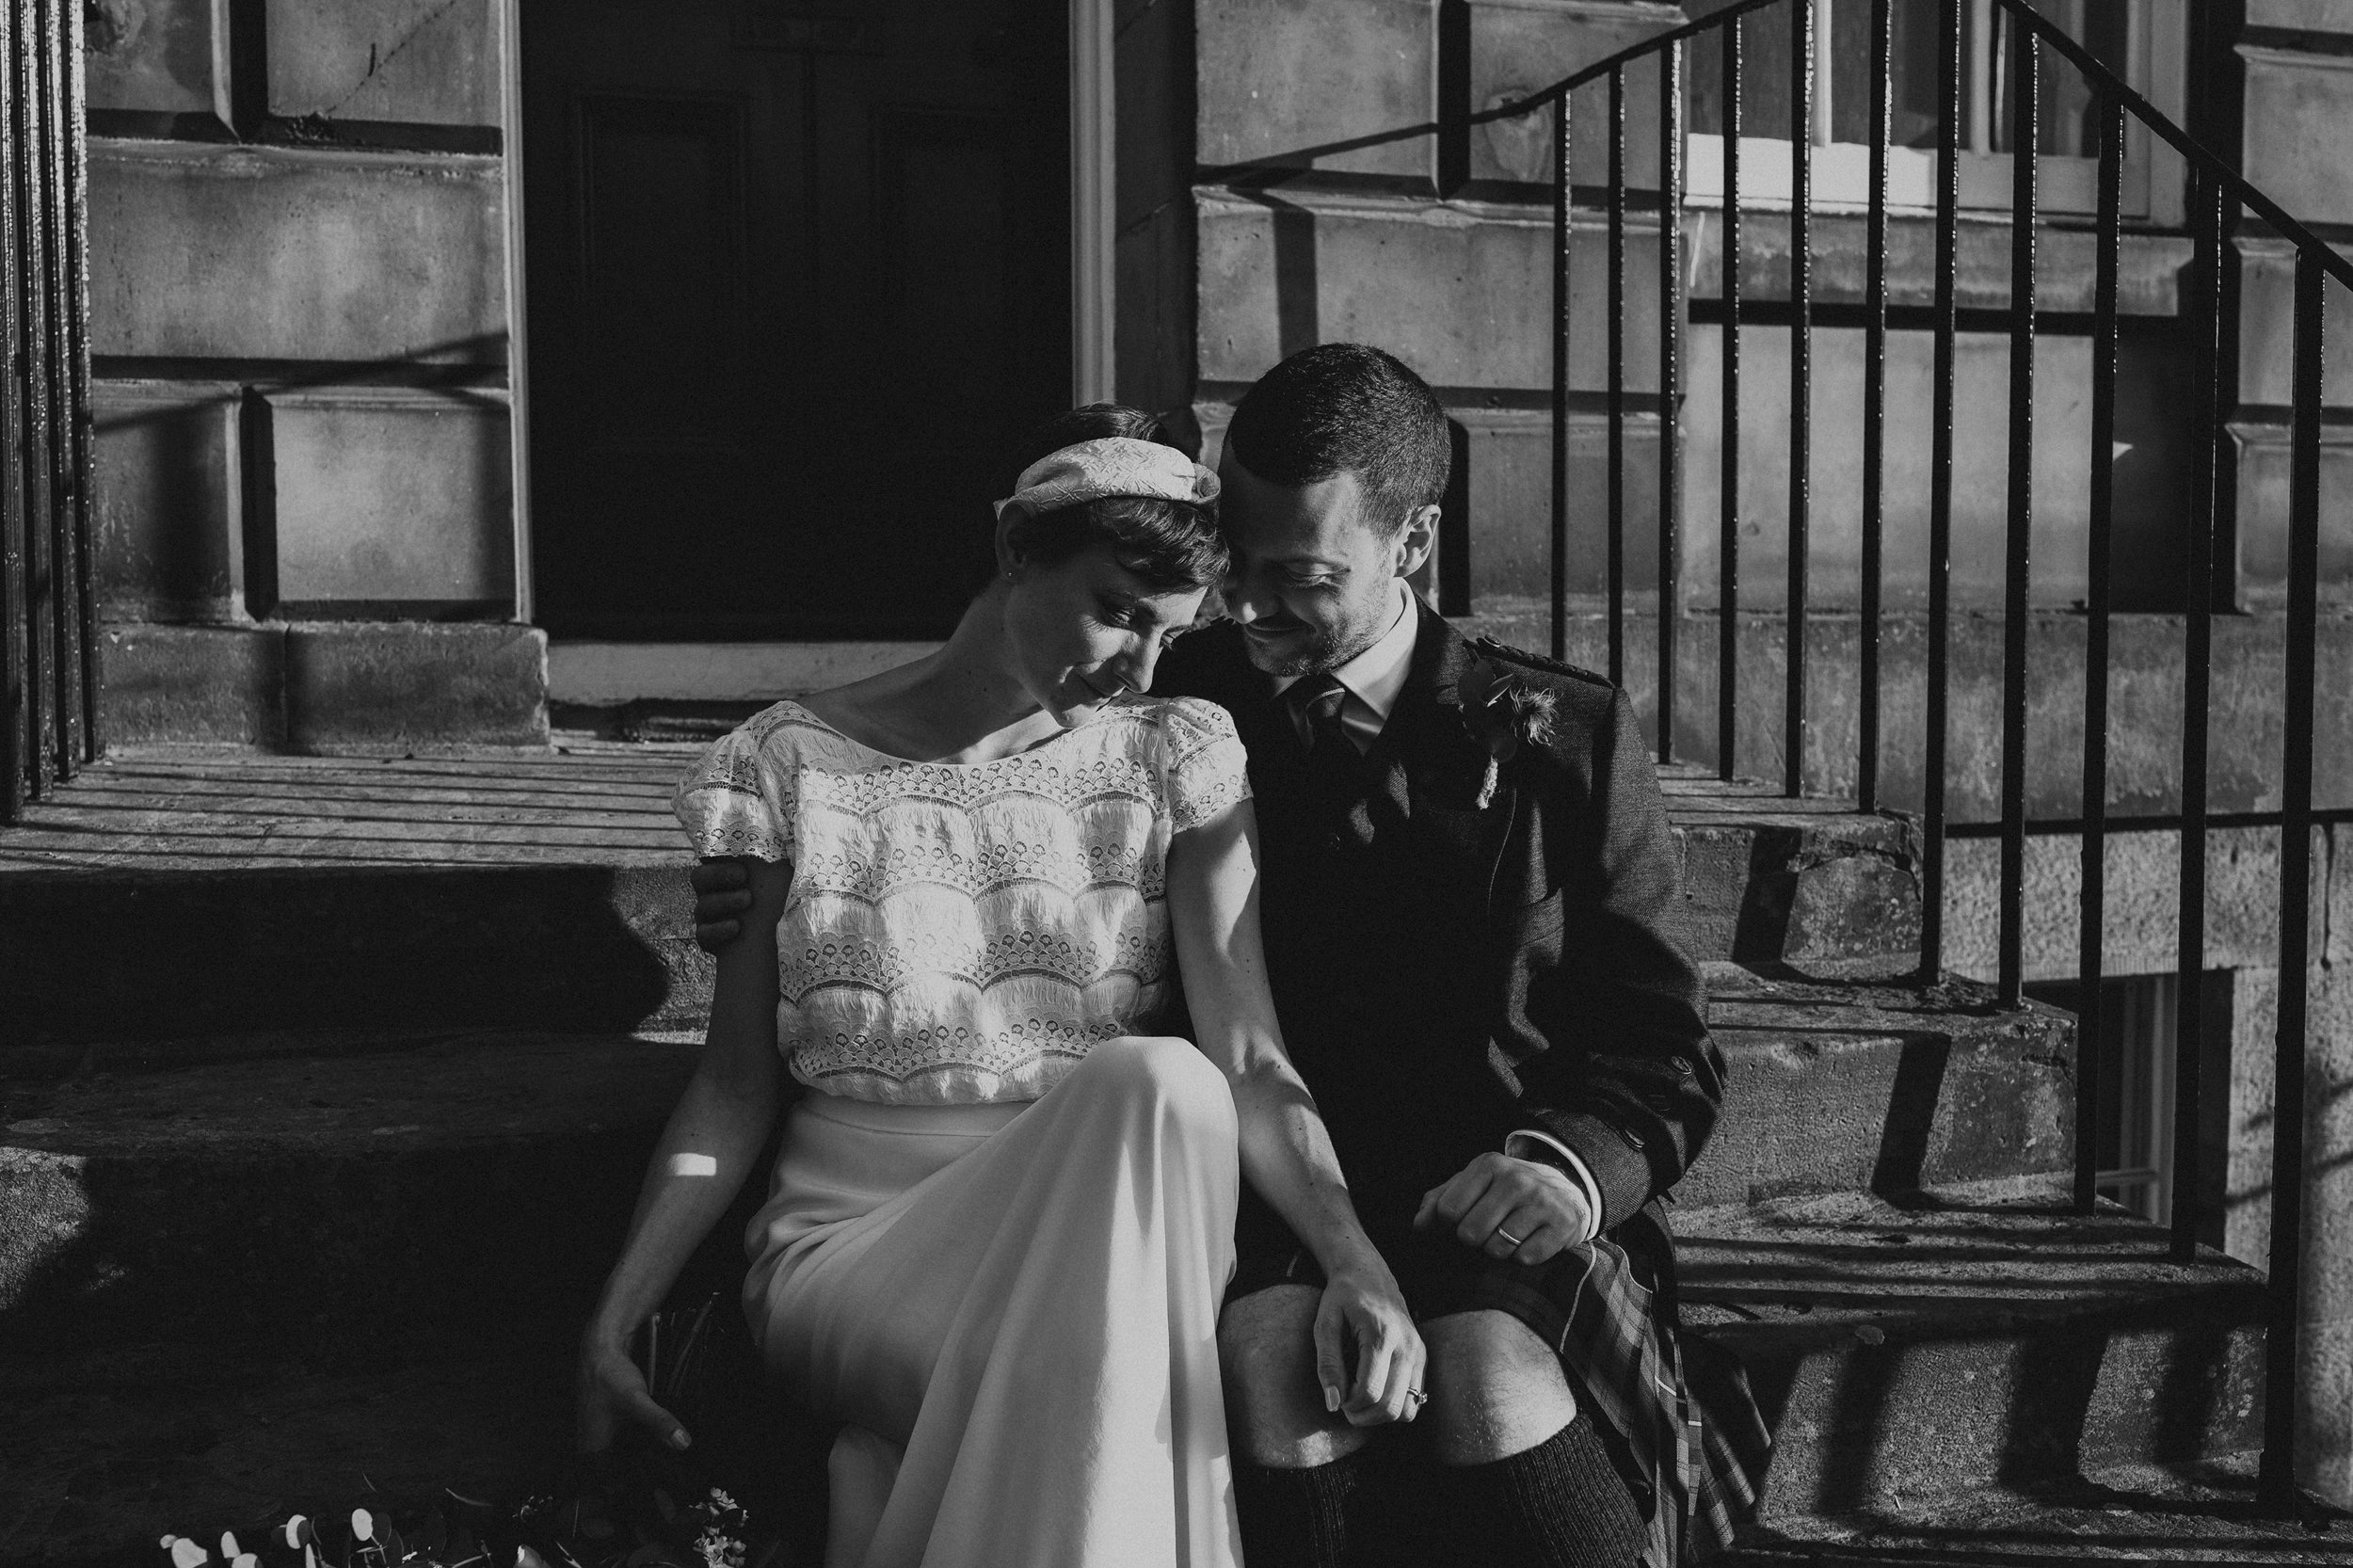 TIMBERYARD_EDINBURGH_WEDDING_PJ_PHILLIPS_PHOTOGRAPHY_182.jpg